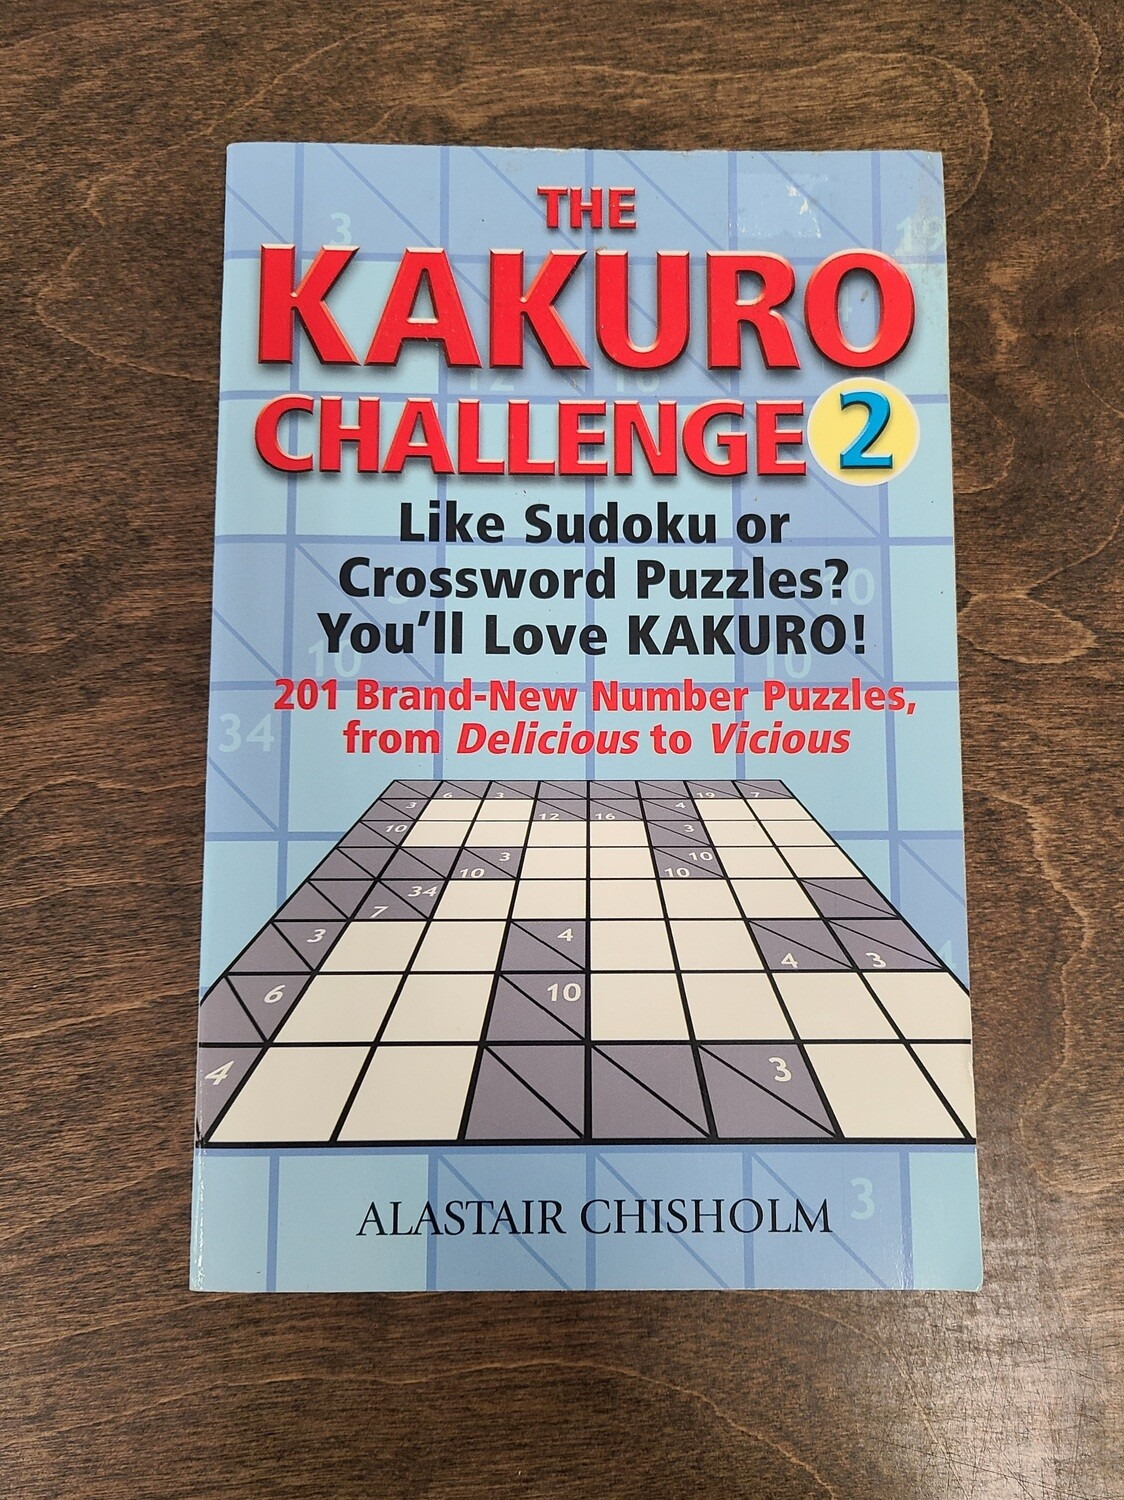 The Kakuro Challenge 2 - 201 Brand-New Sudoku or Crossword Puzzles by Alastair Chisholm